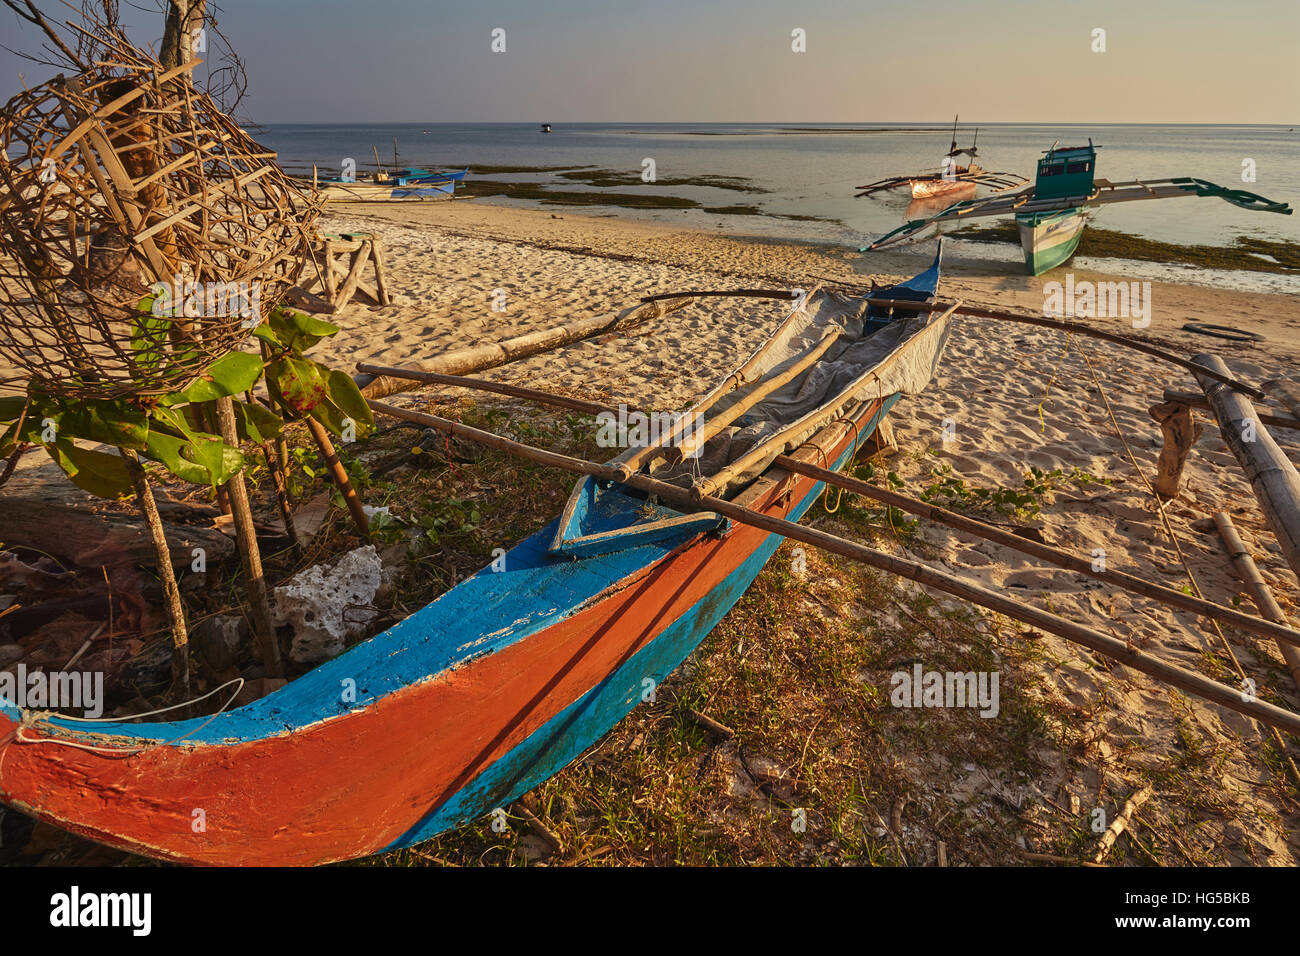 Fishing boats pulled up onto Paliton beach, Siquijor, Philippines, Southeast Asia, Asia - Stock Image